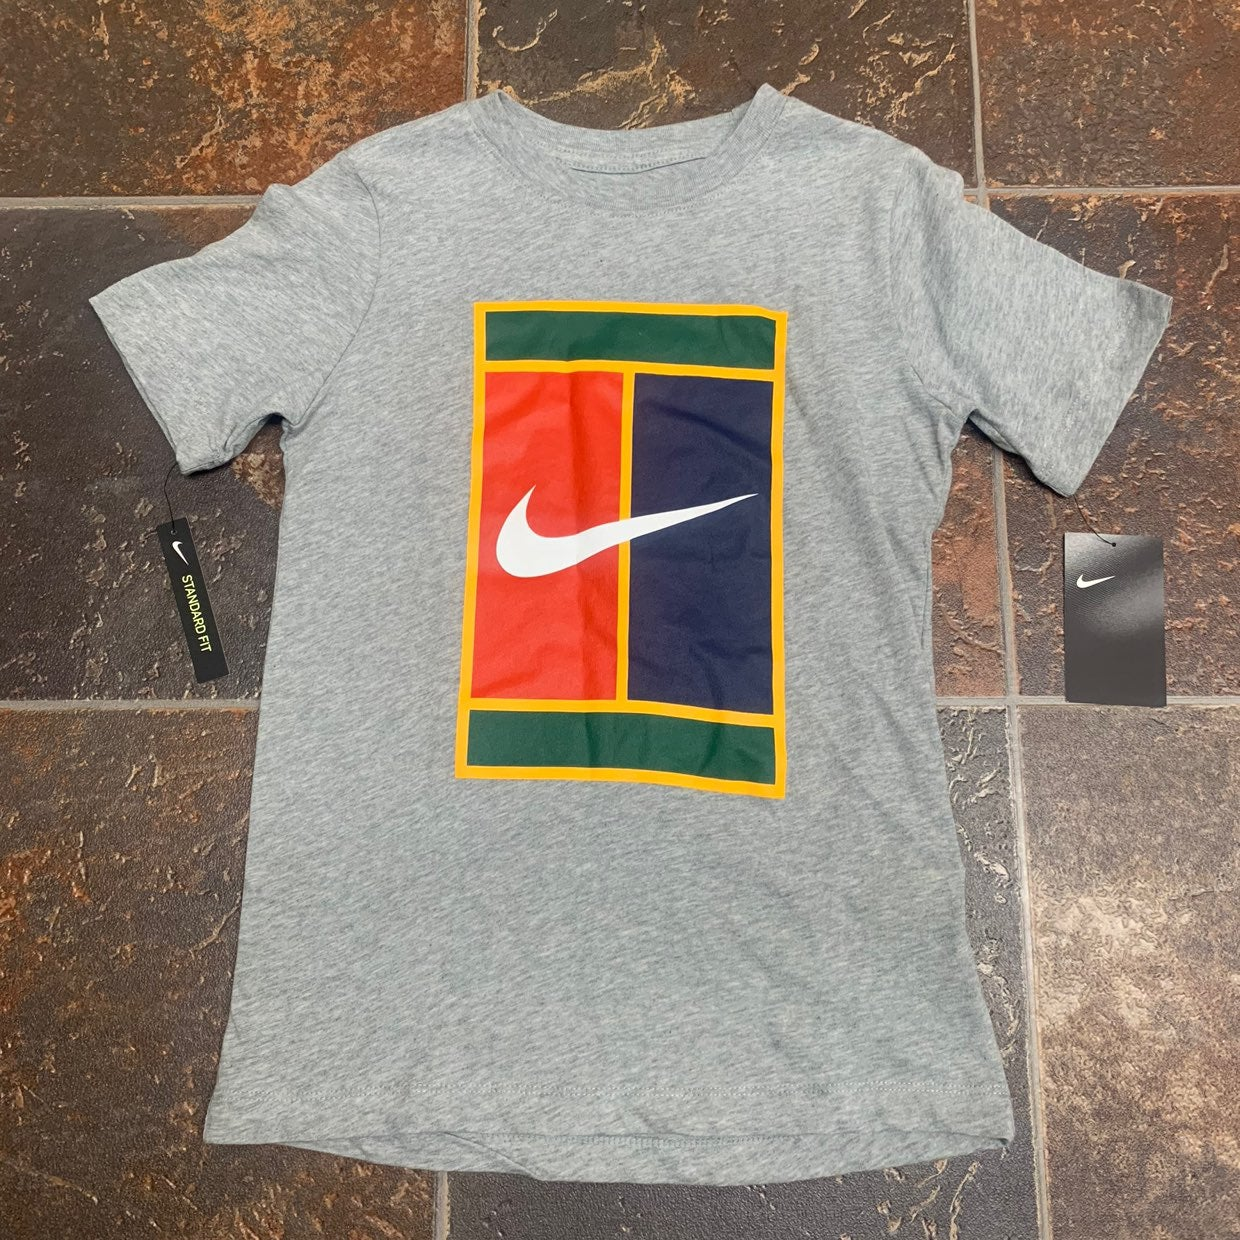 BRAND NEW! Nike Short Sleeve Shirt Boys